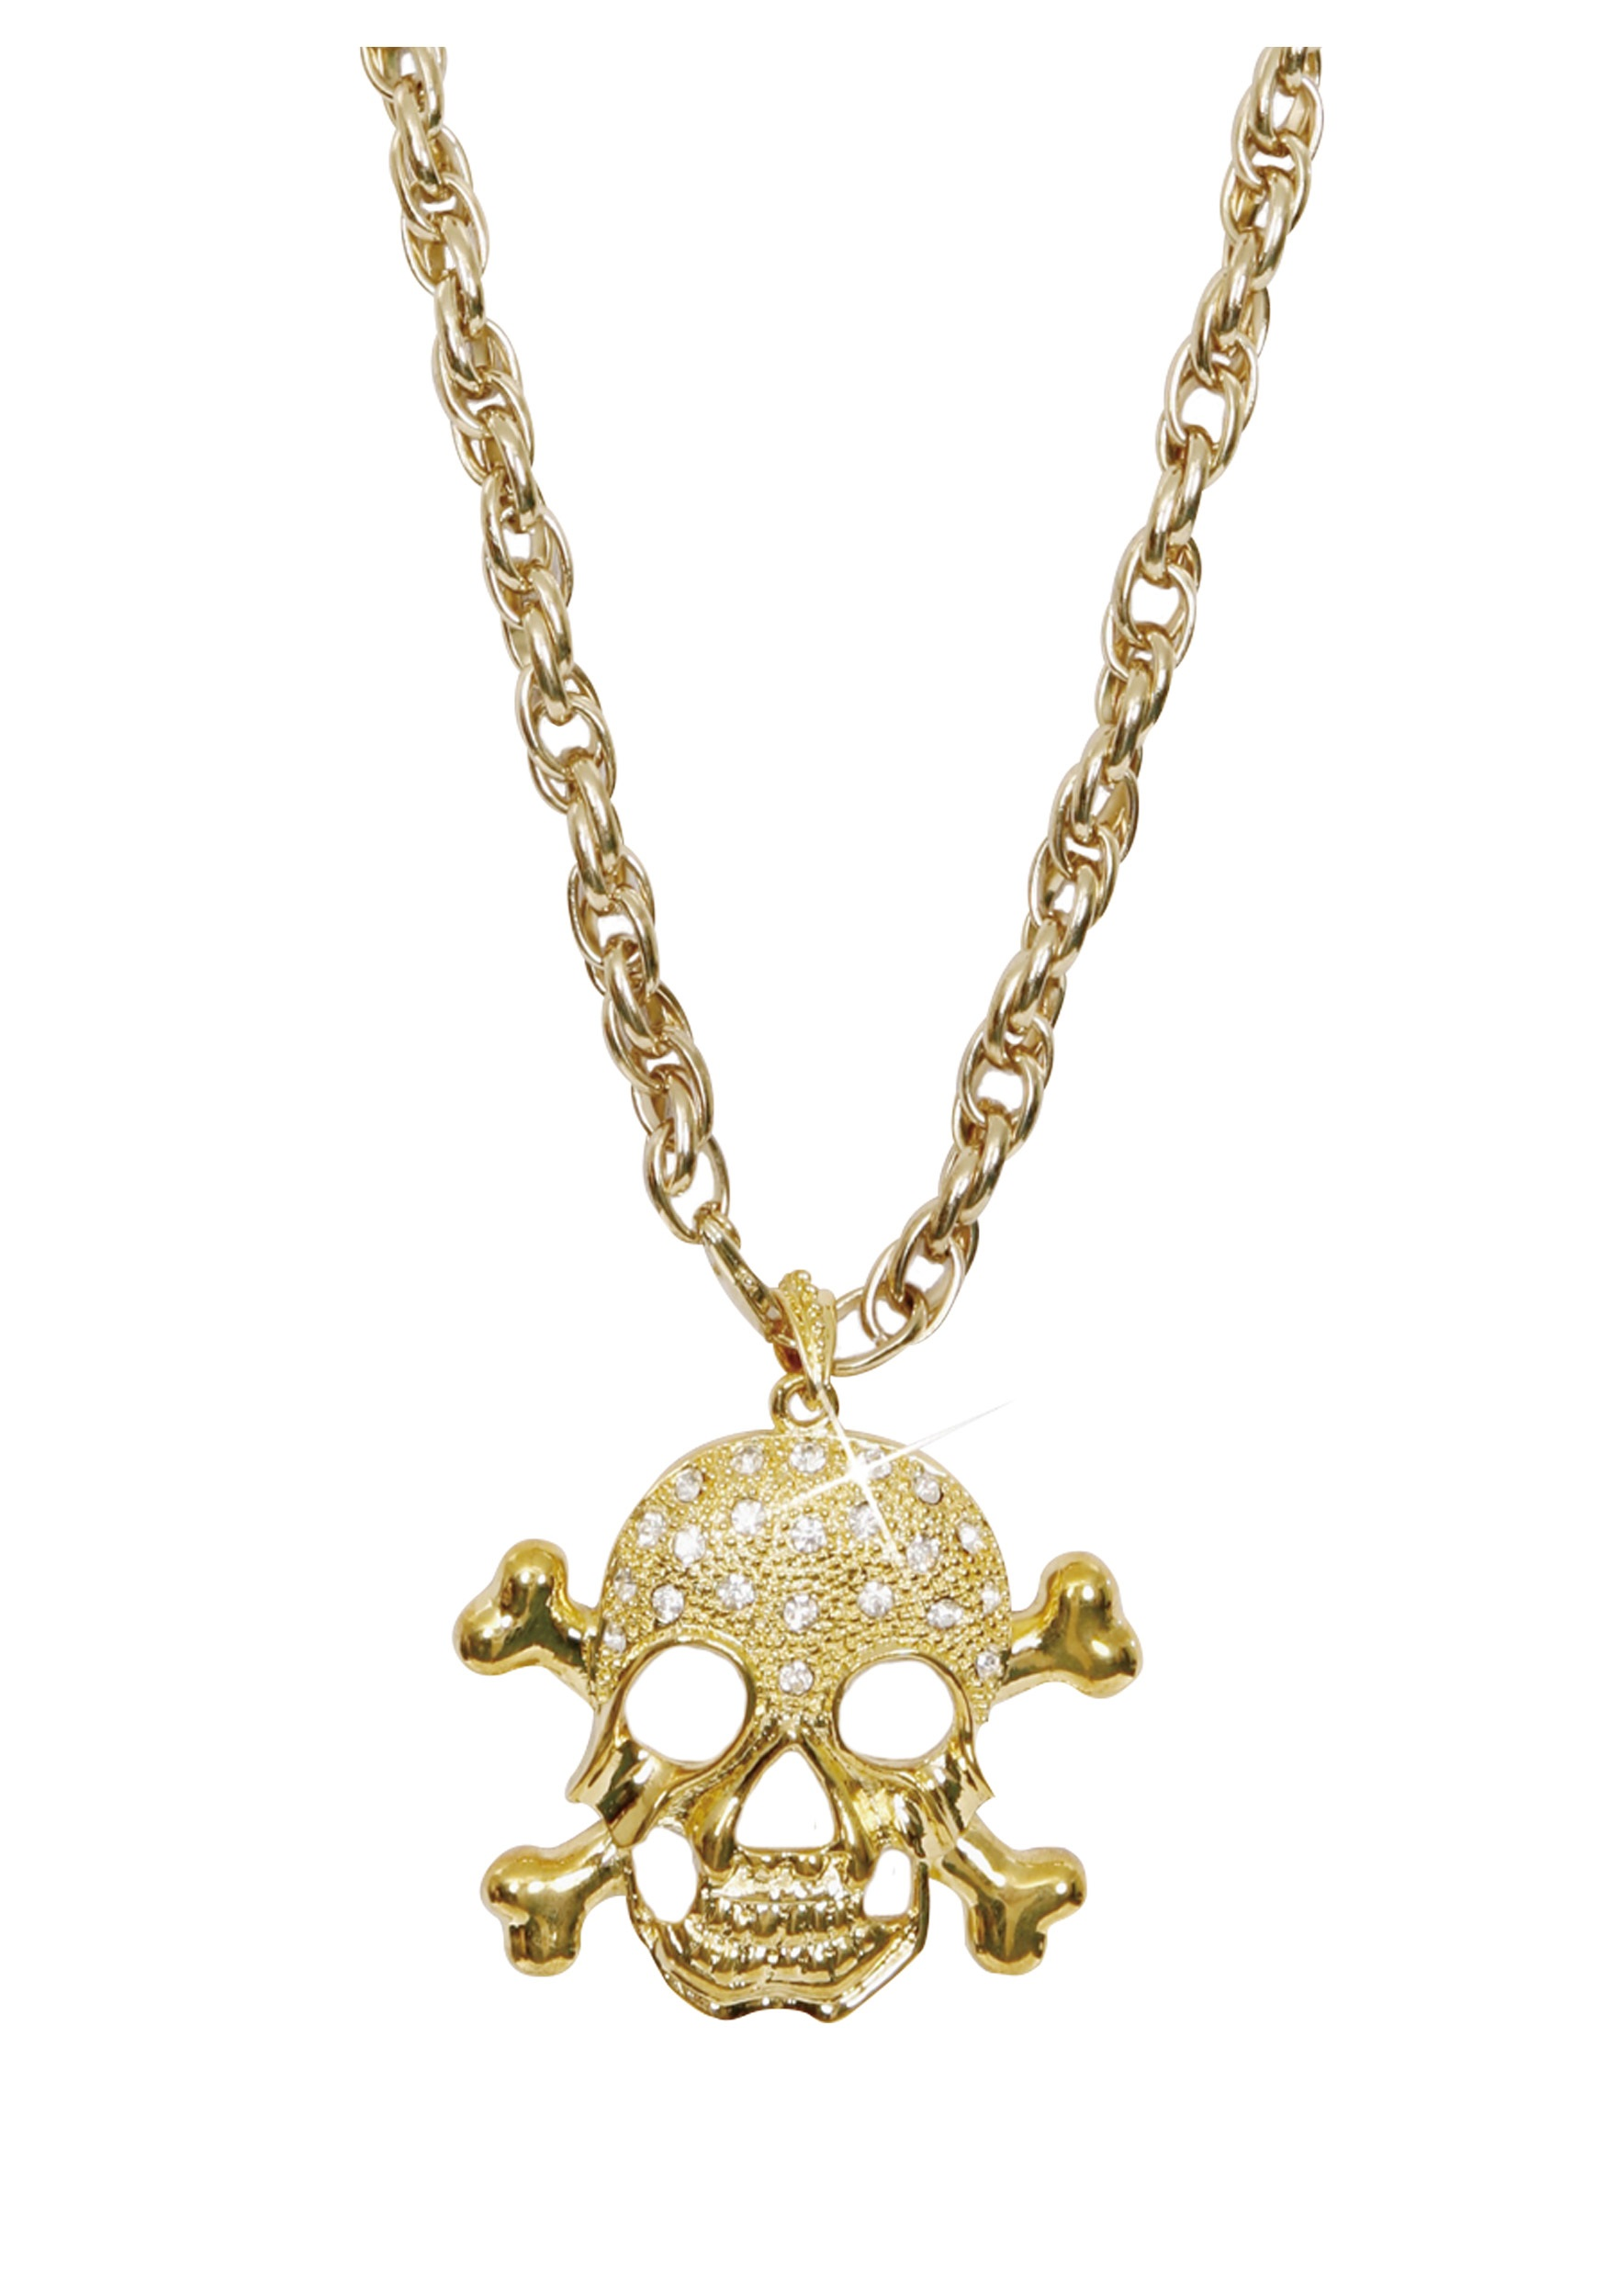 Halloween spider decorations - Gold Pirate Necklace